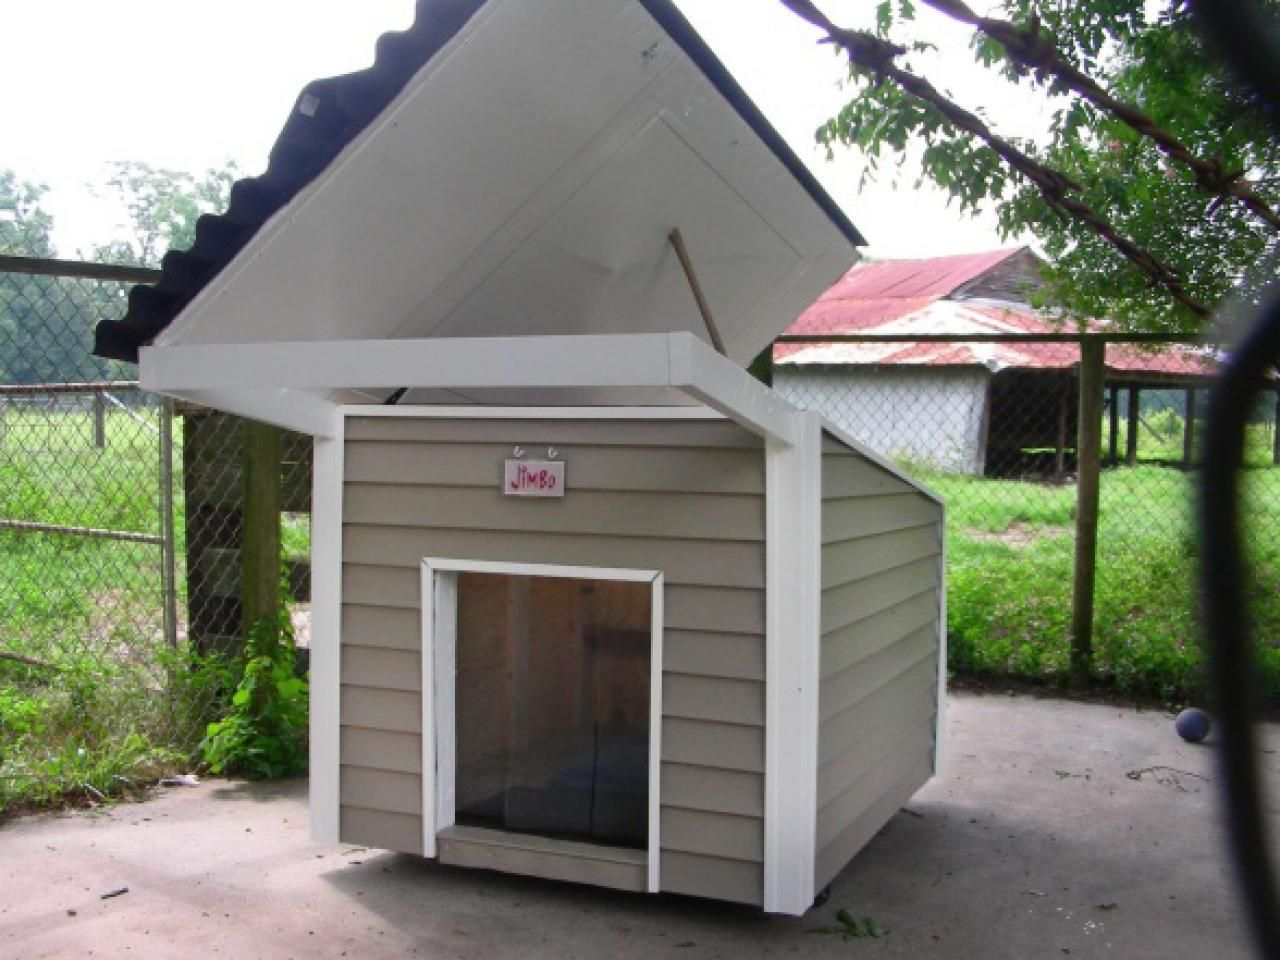 Hinged Roof Doghouse Build A Dog House Dog Houses Dog House Plans